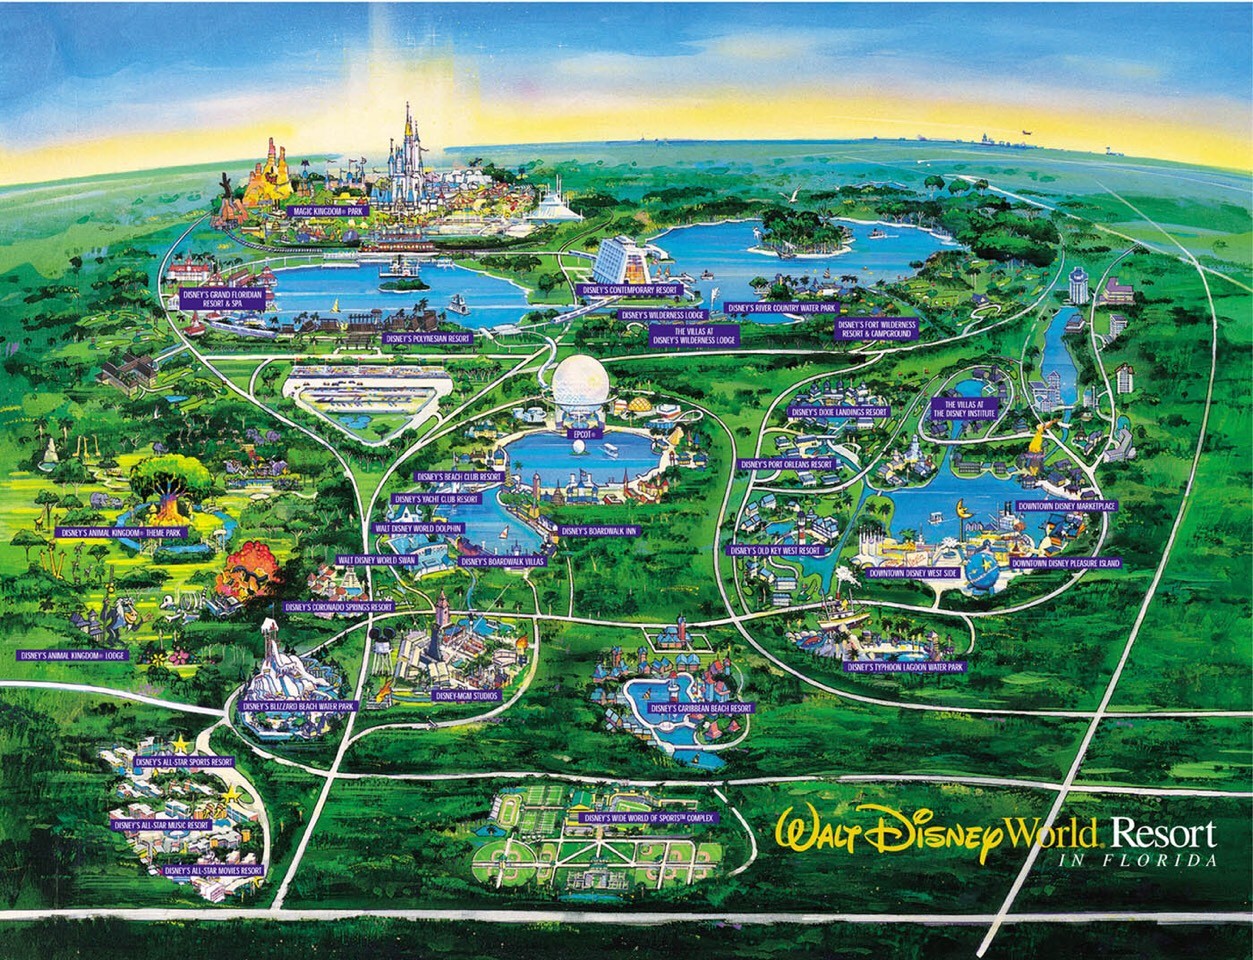 Stay at a resort. The big perk of staying at a Disney resort is the bus system. No parking, no rental car costs, no gas money going to and from parks. Disney runs buses from park to park, and only Disney World Resort guests can ride them! If you make a purchase at a gift shop in the parks, you can h